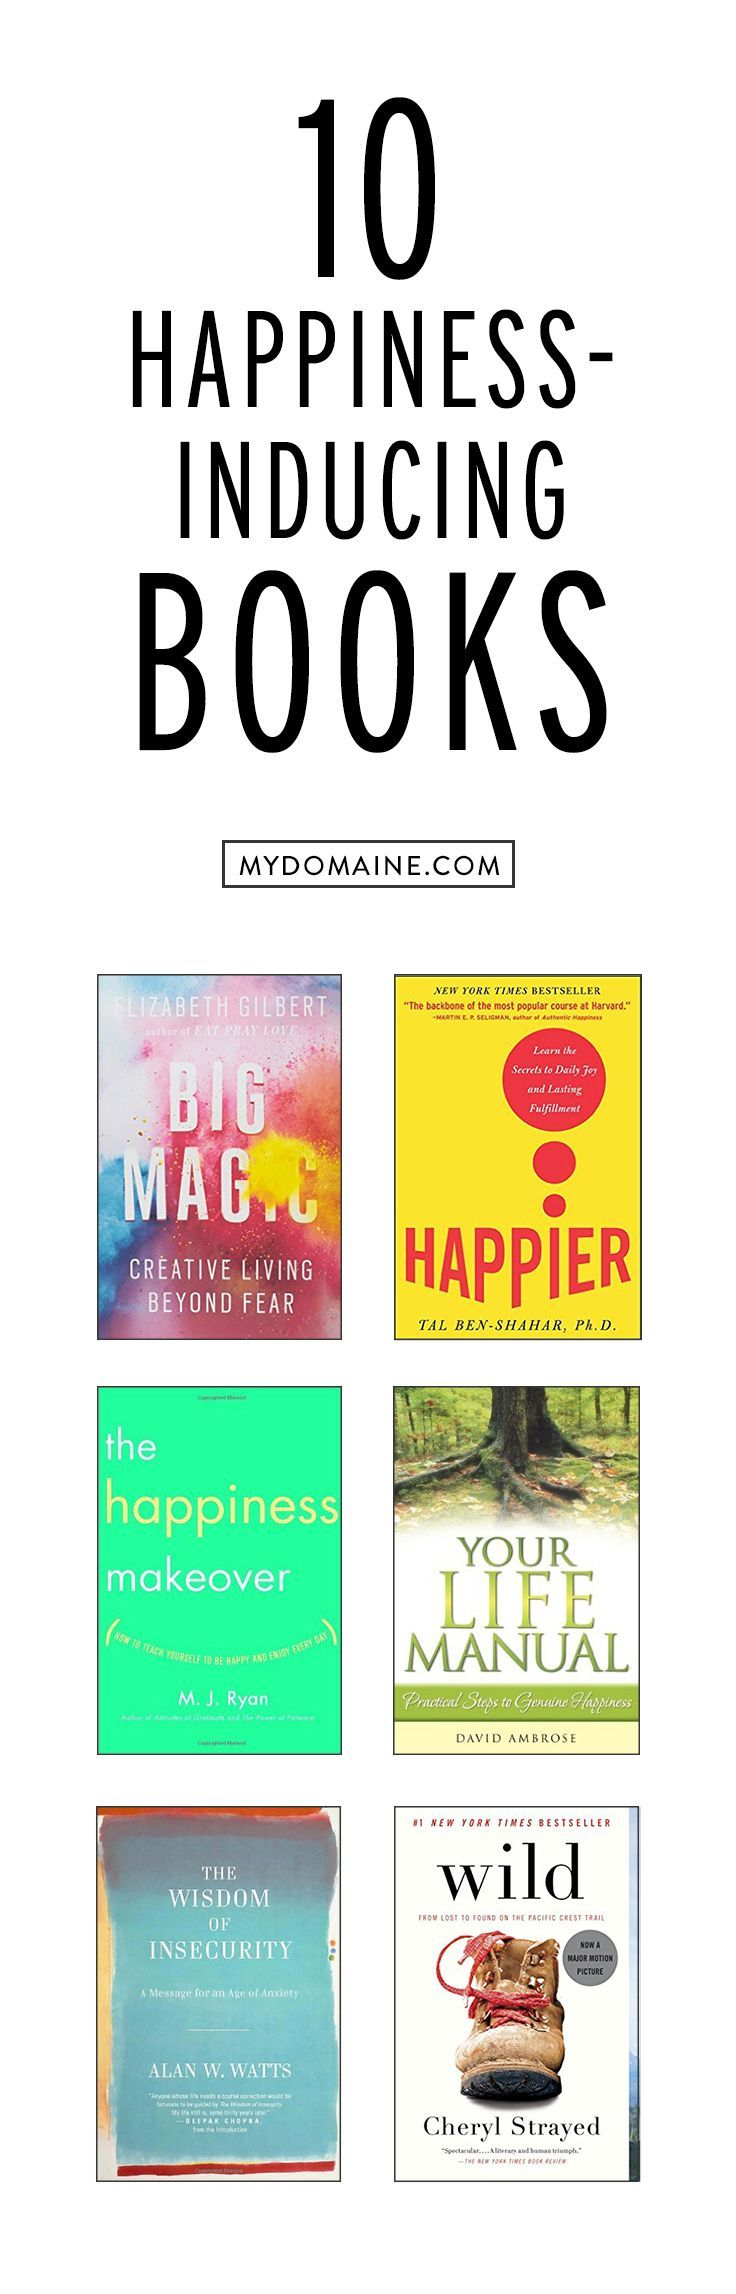 10 Happiness Inducing Books | My Domaine